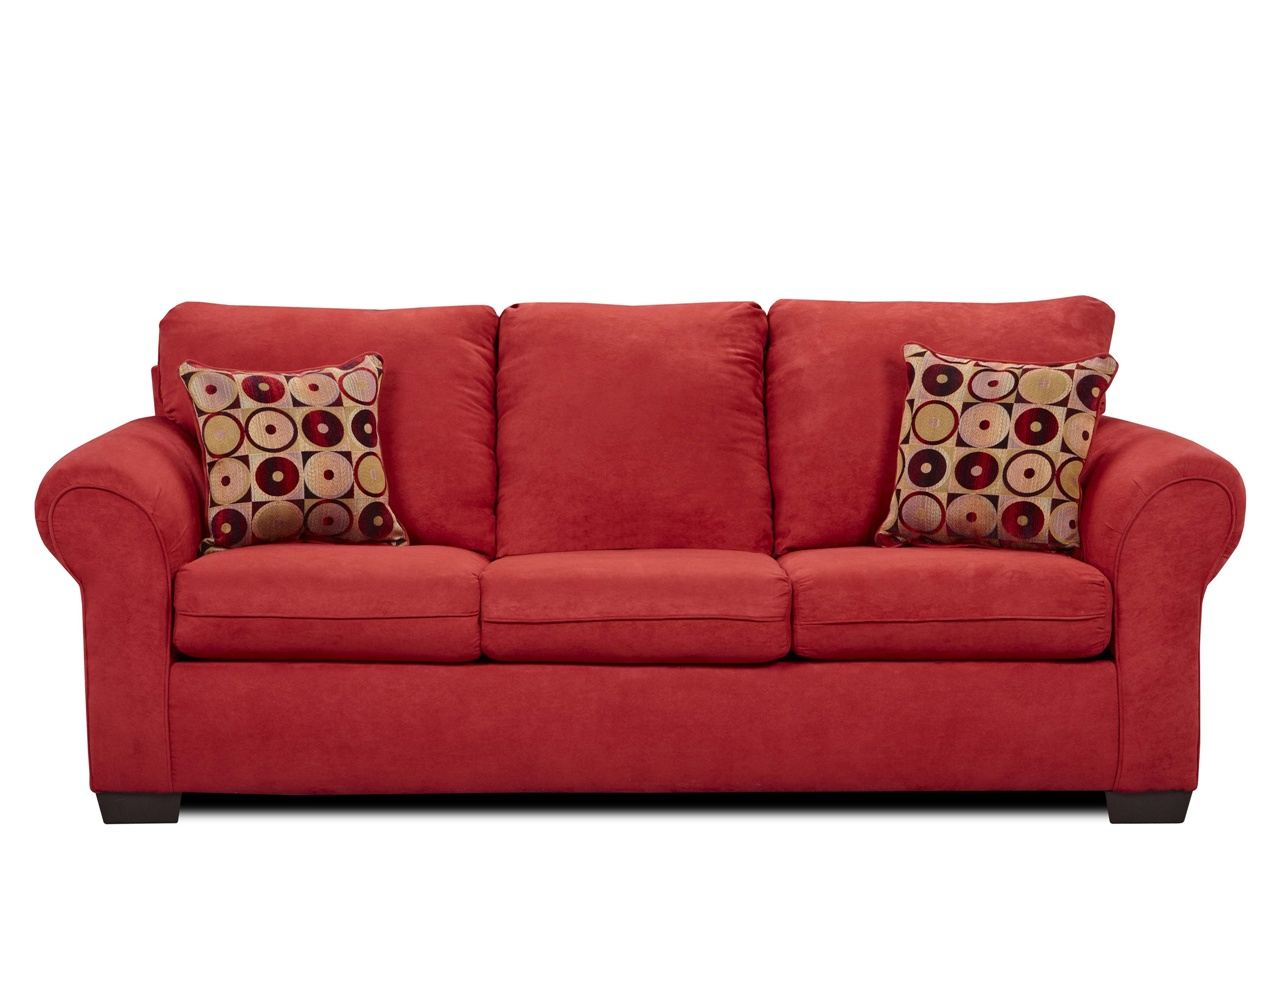 Cute cheapest couches available online couch sofa for Inexpensive furniture